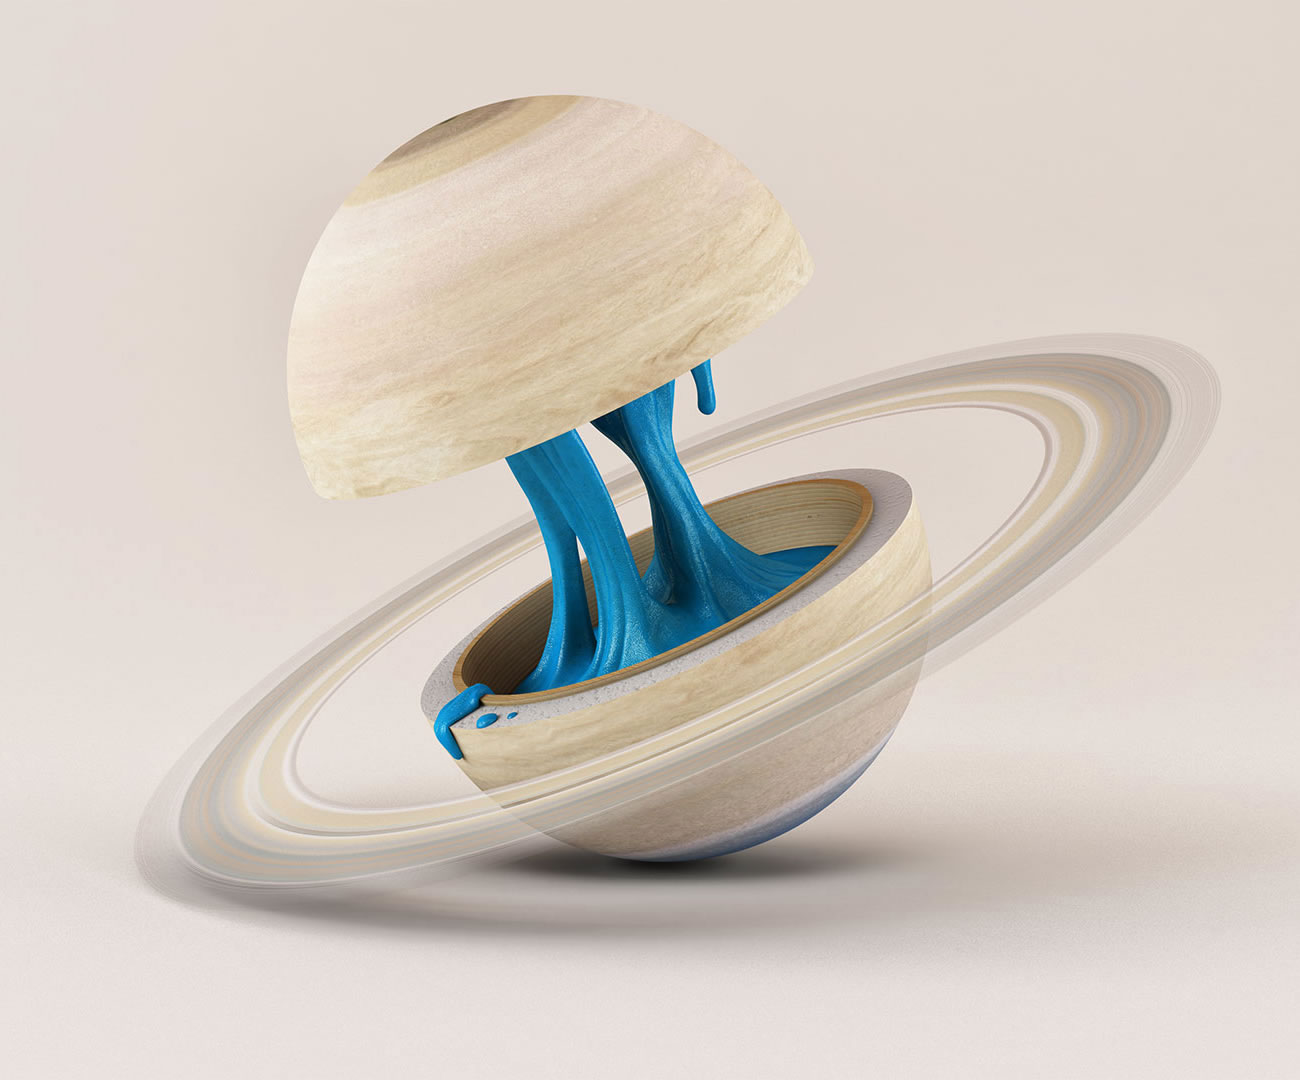 saturn gum inside, planetary anatomy by foreal